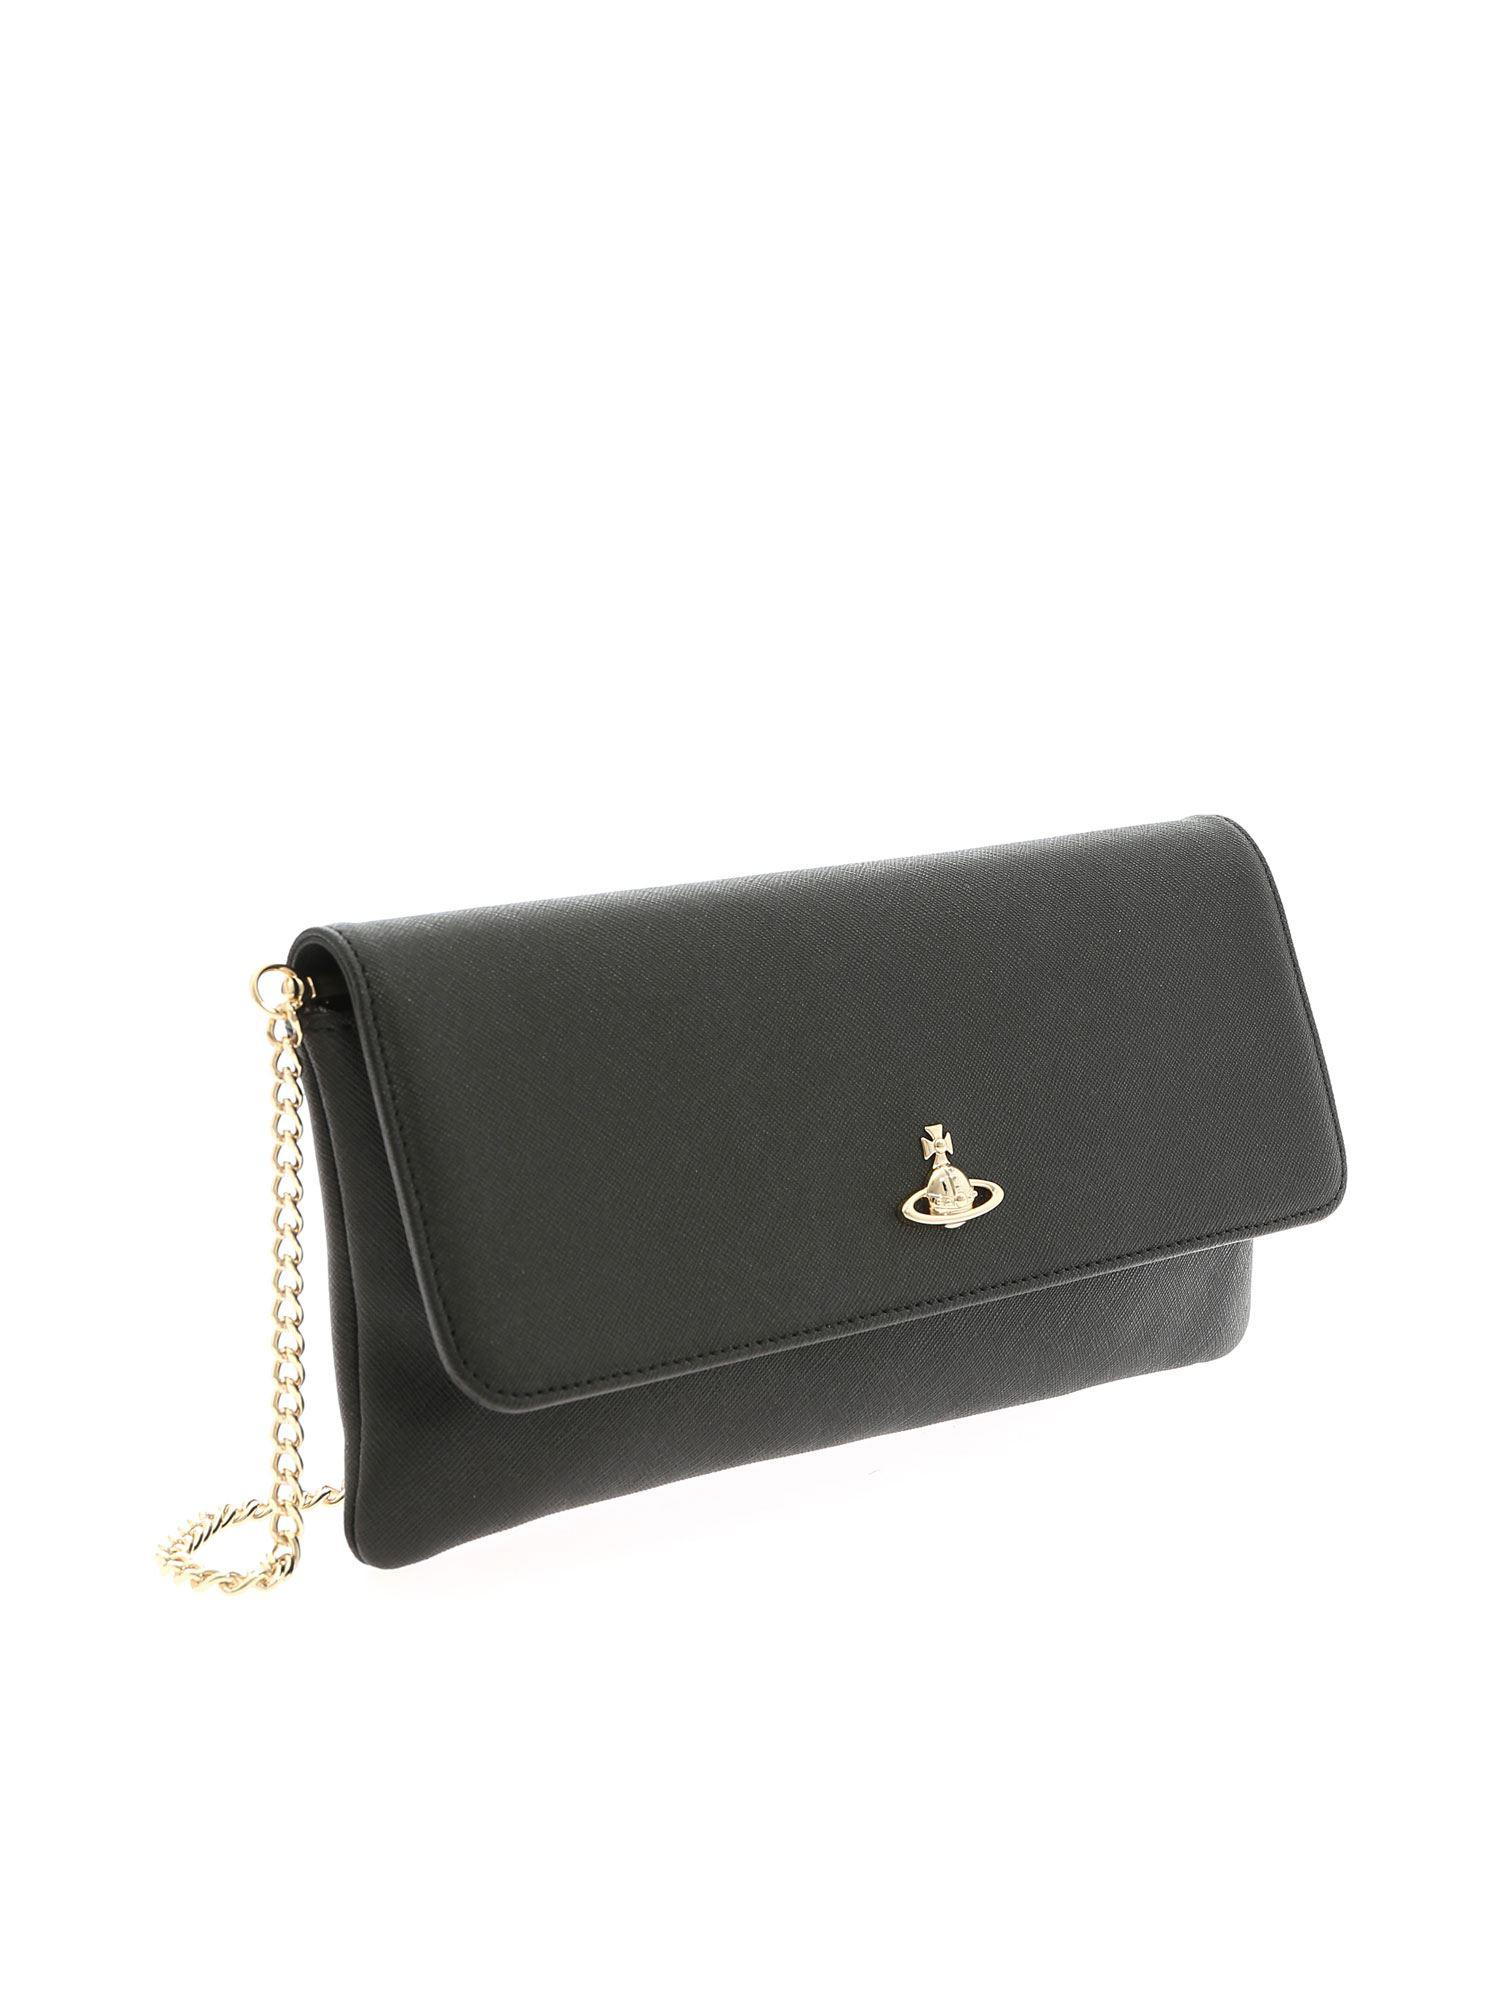 97a78ac1becfe Lyst - Vivienne Westwood Victoria Black Clutch Bag With Logo in Black